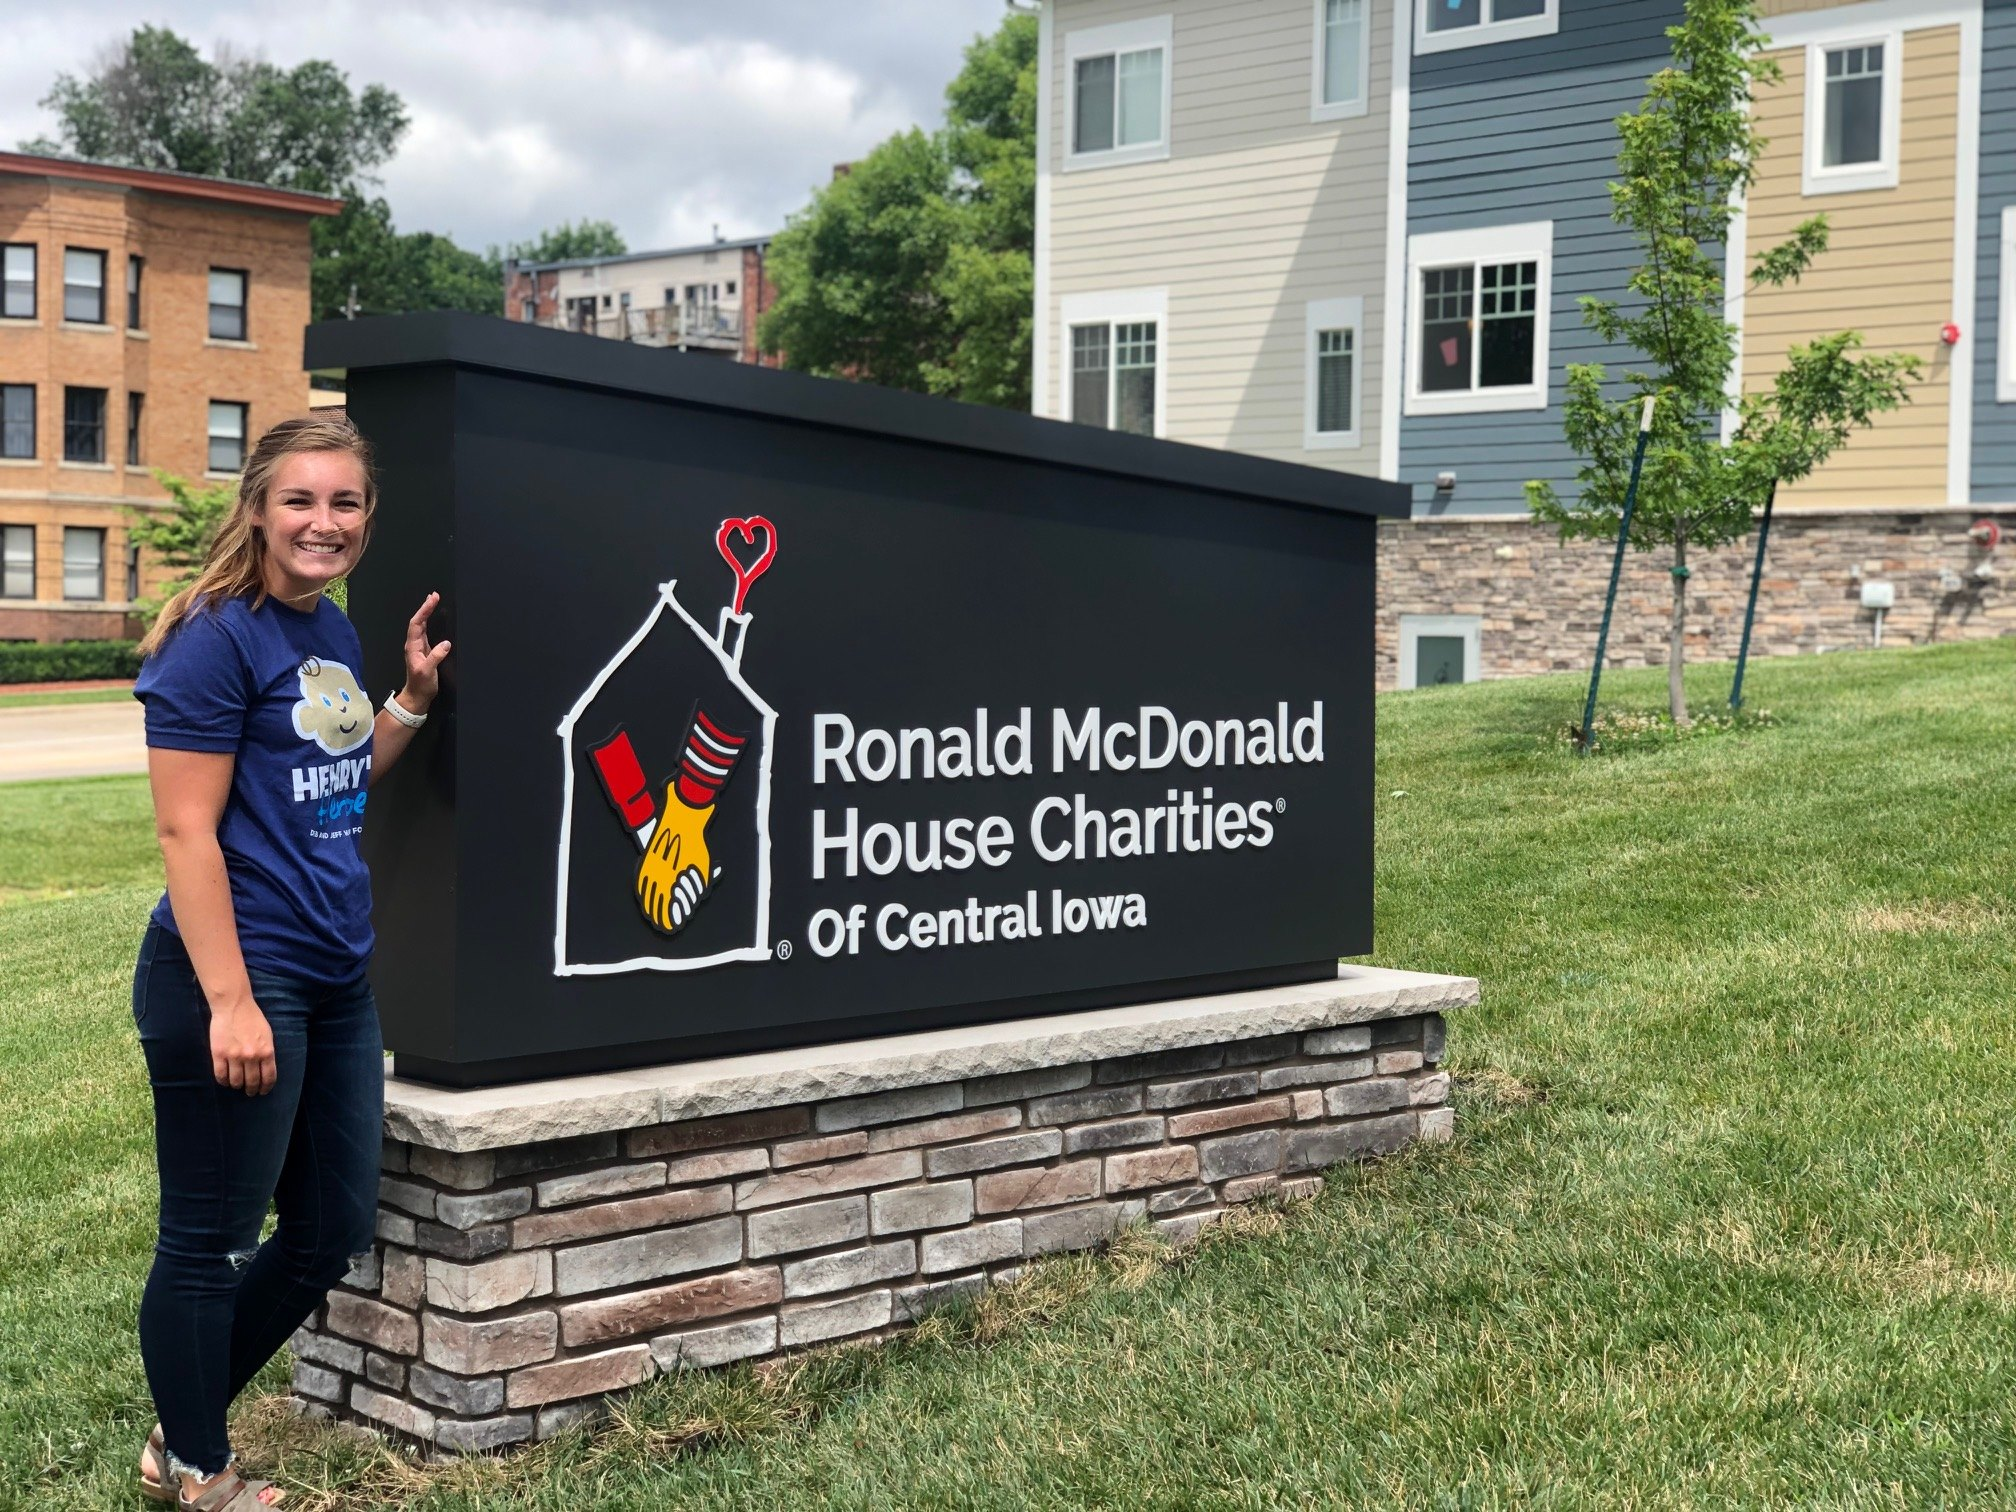 Lexie standing by Ronald McDonald sign